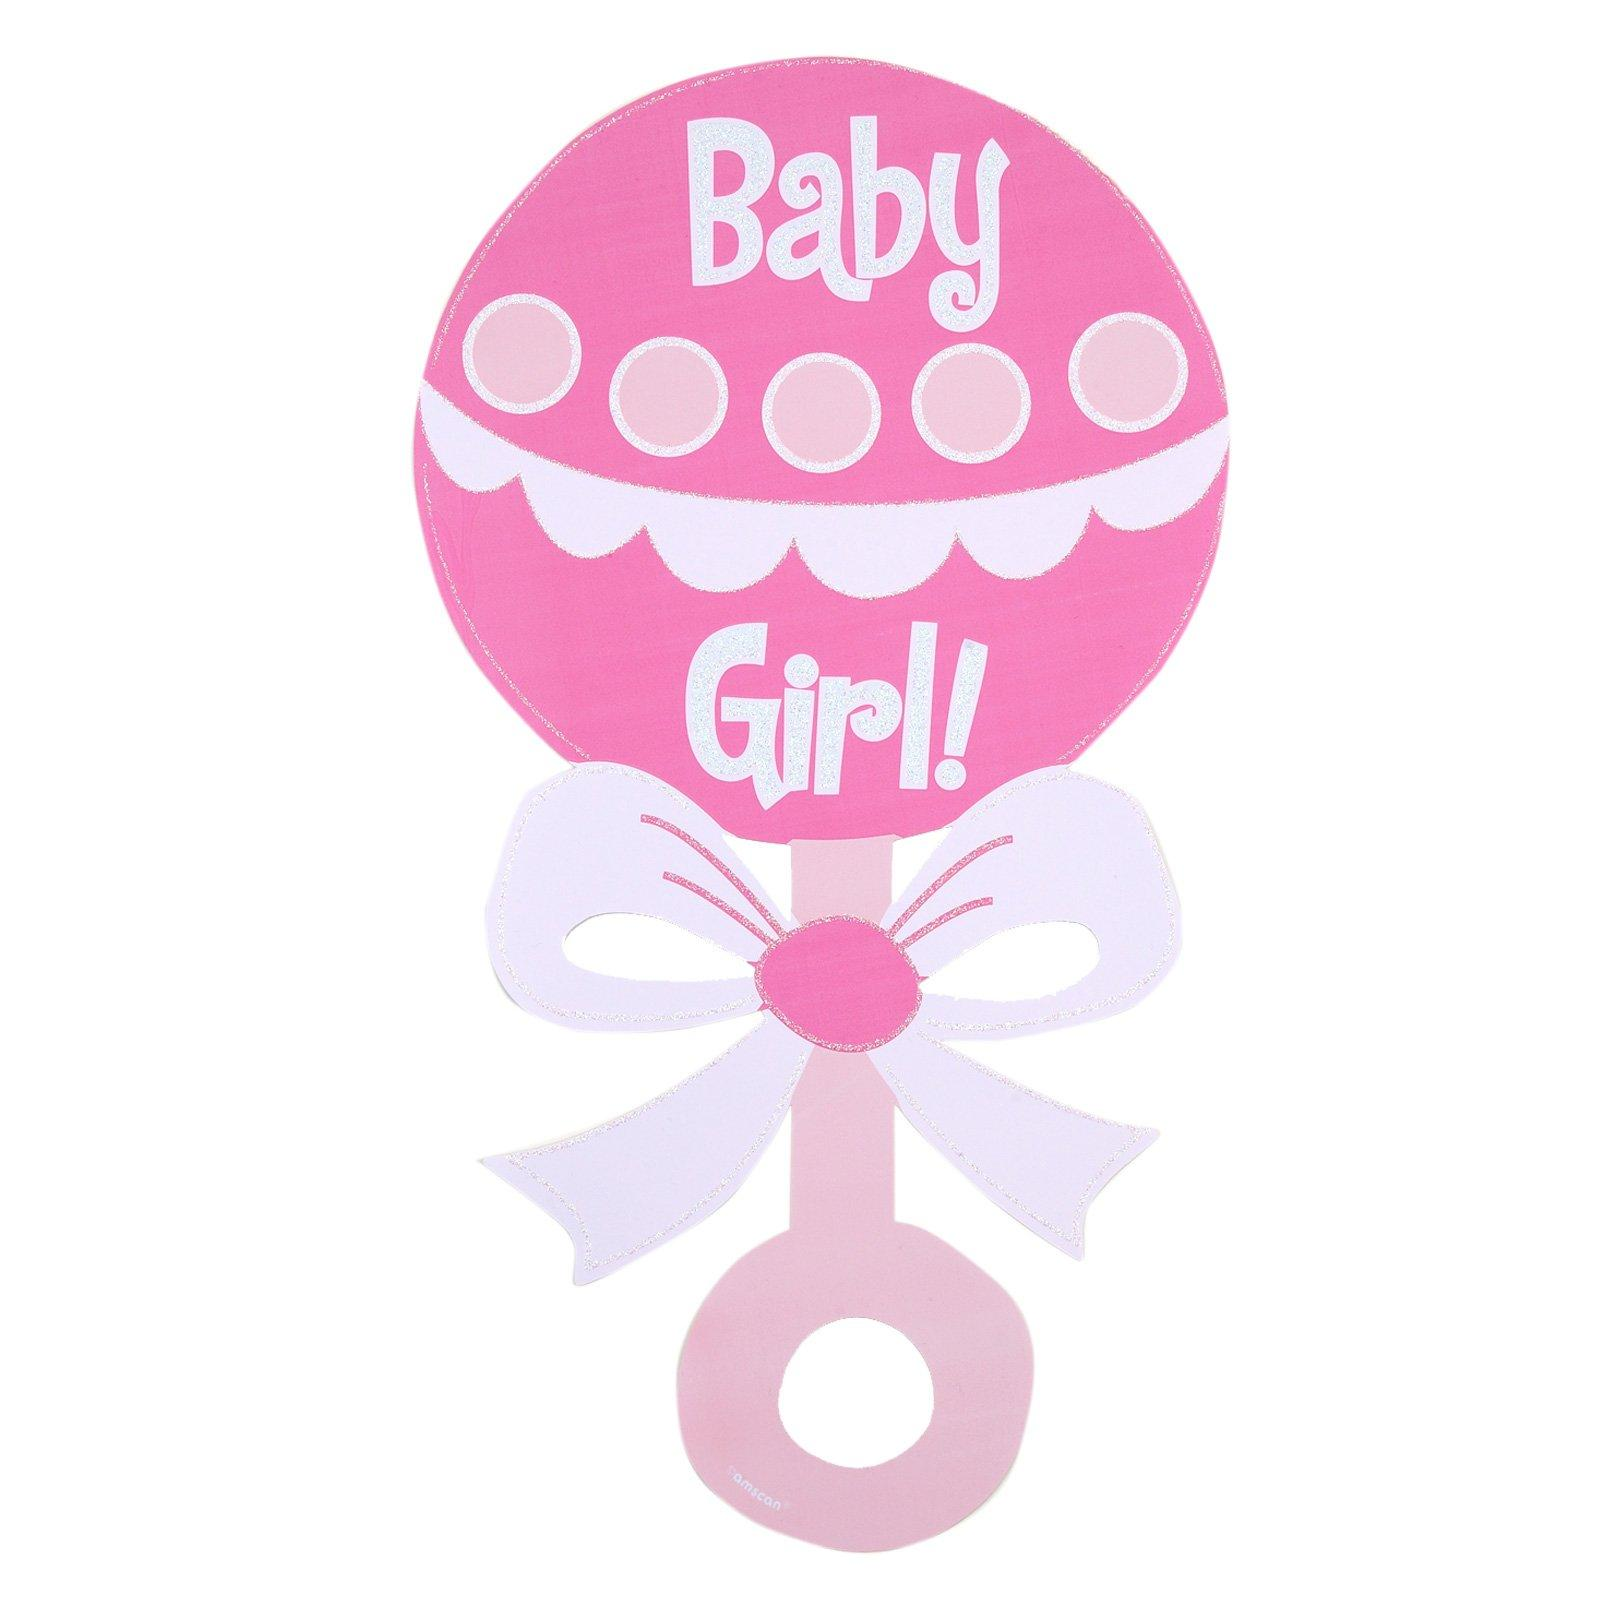 Baby girl bottle clipart svg freeuse library Baby Rattle Clipart - Clipart Kid svg freeuse library